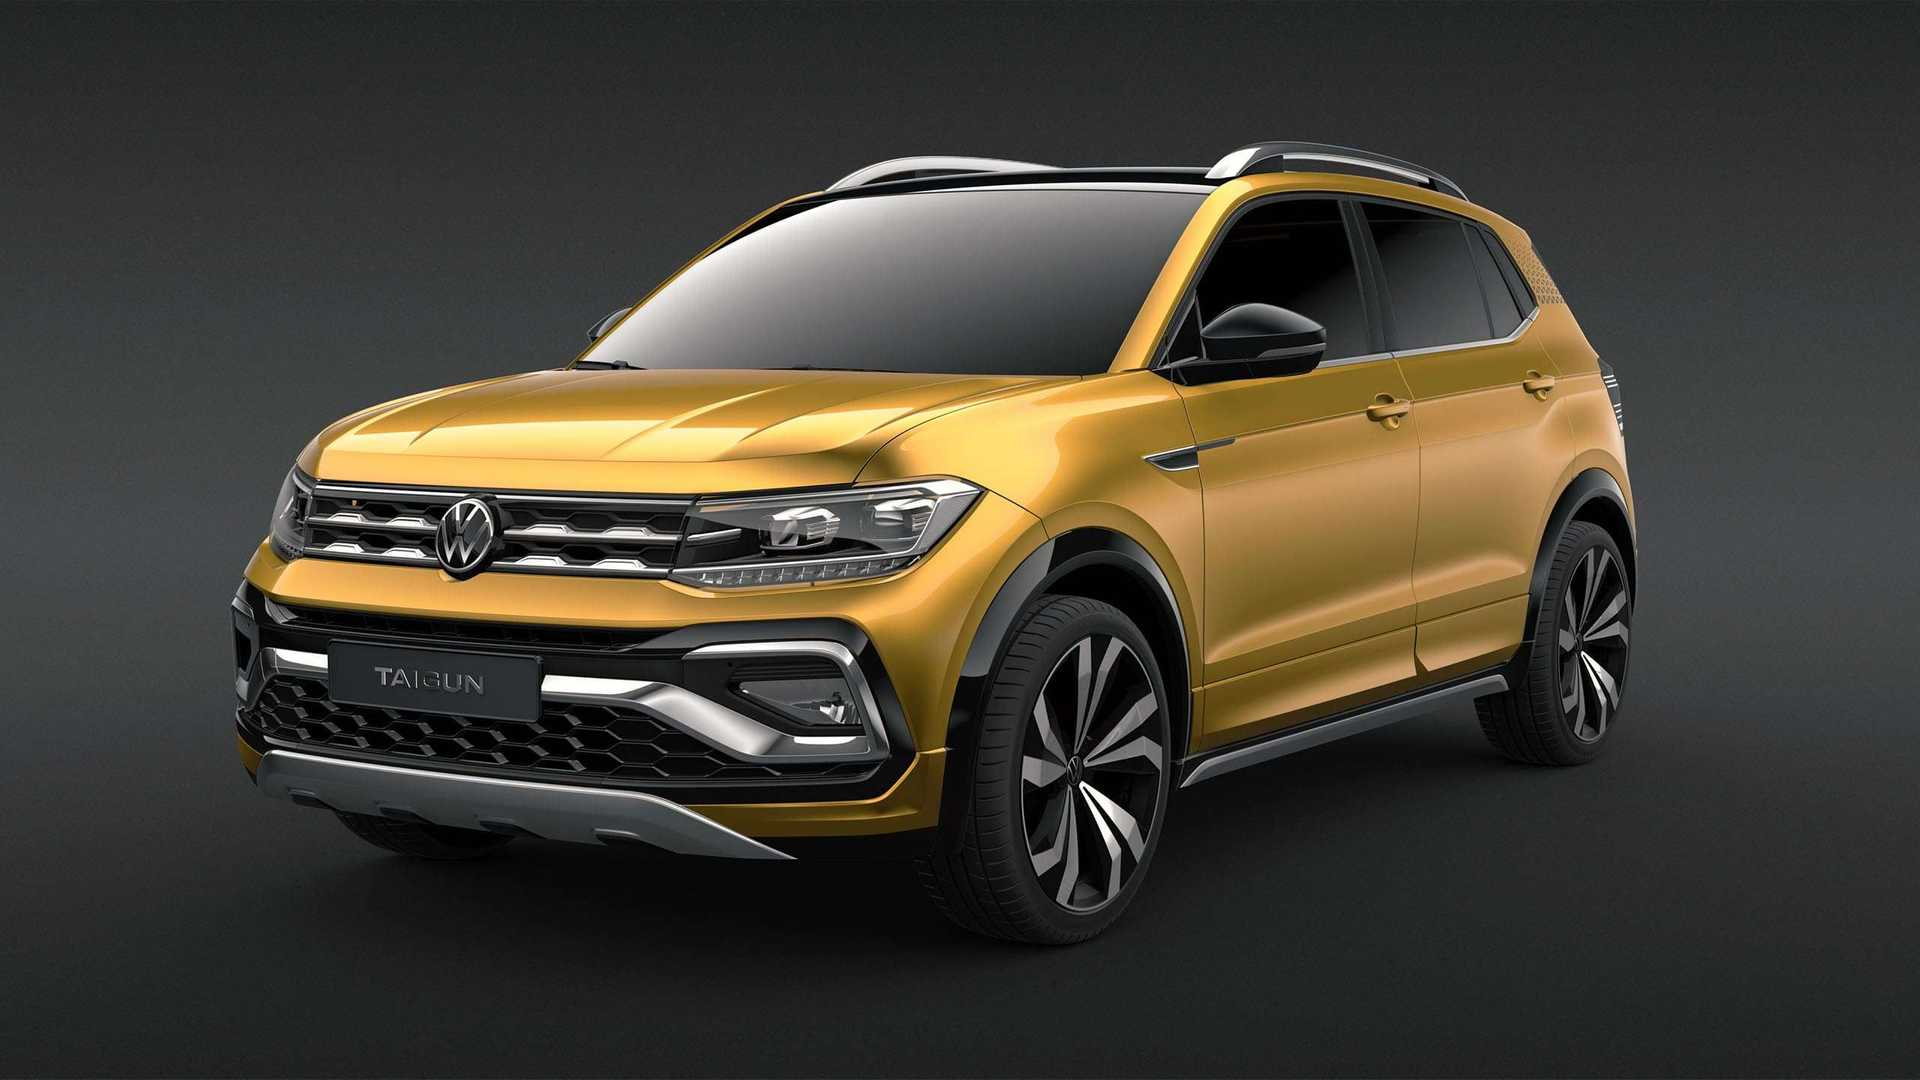 Volkswagen_Taigun_India_0001